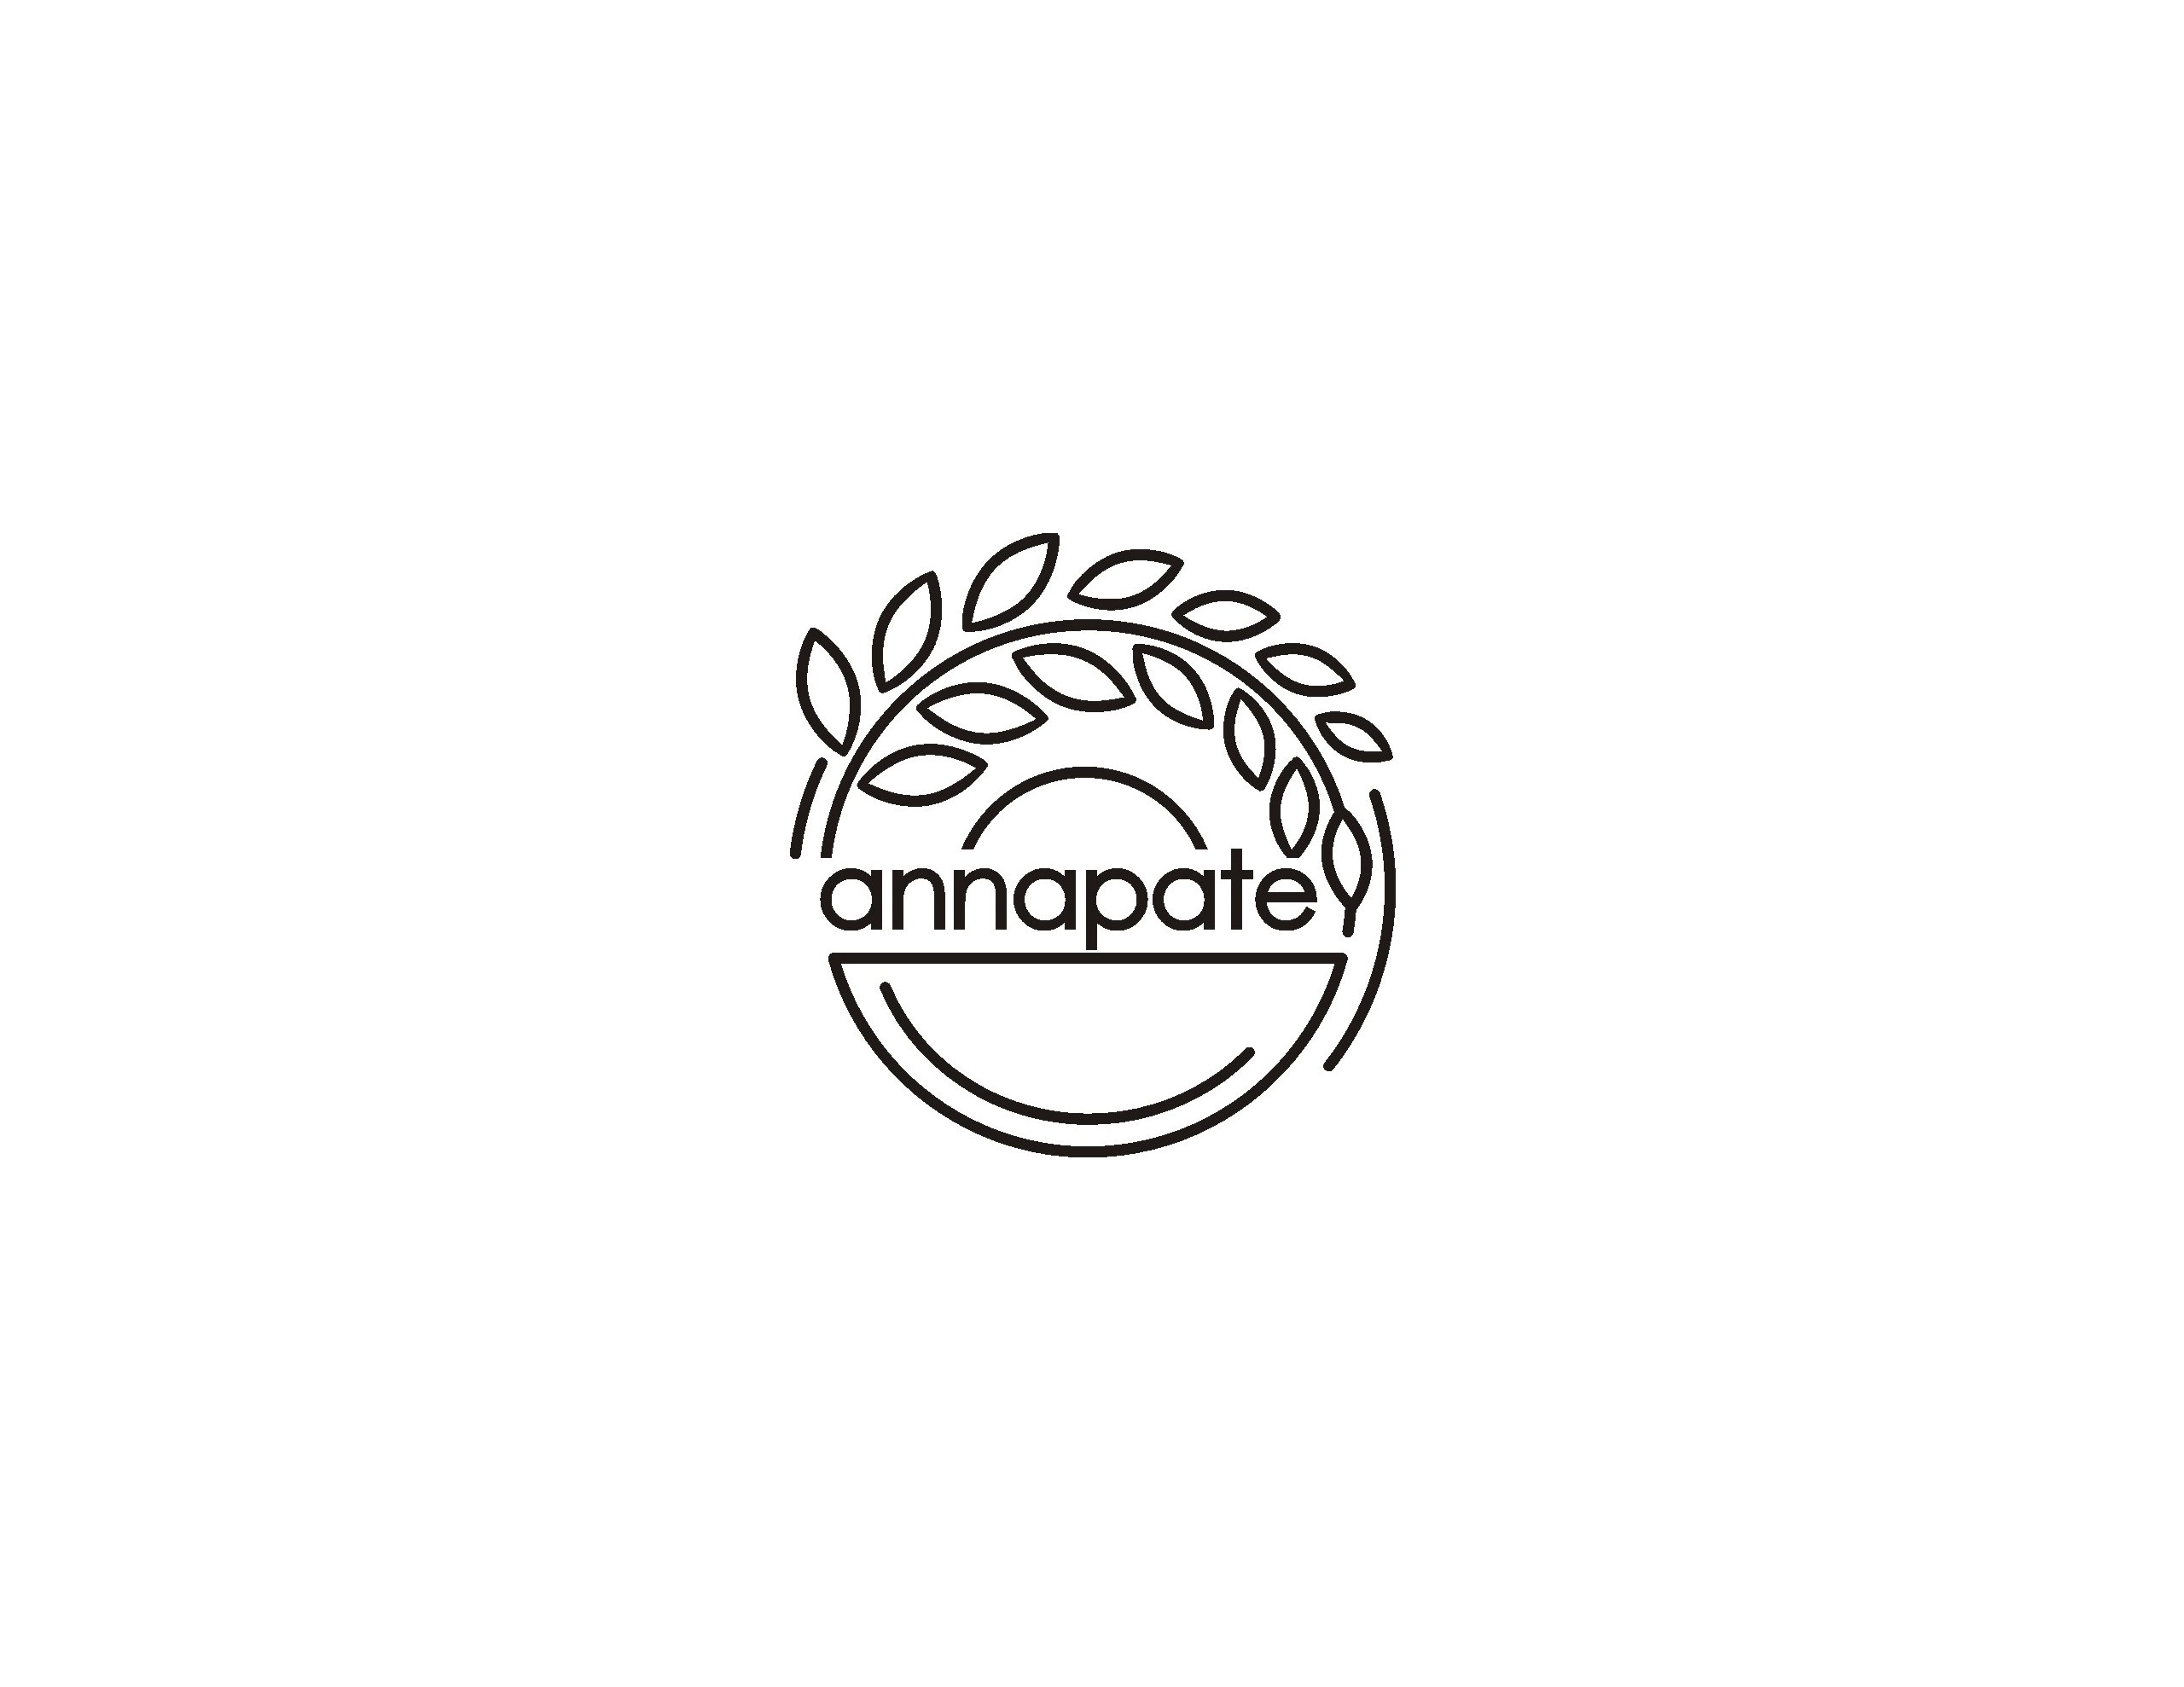 Annapate Rice & Pulse Traders